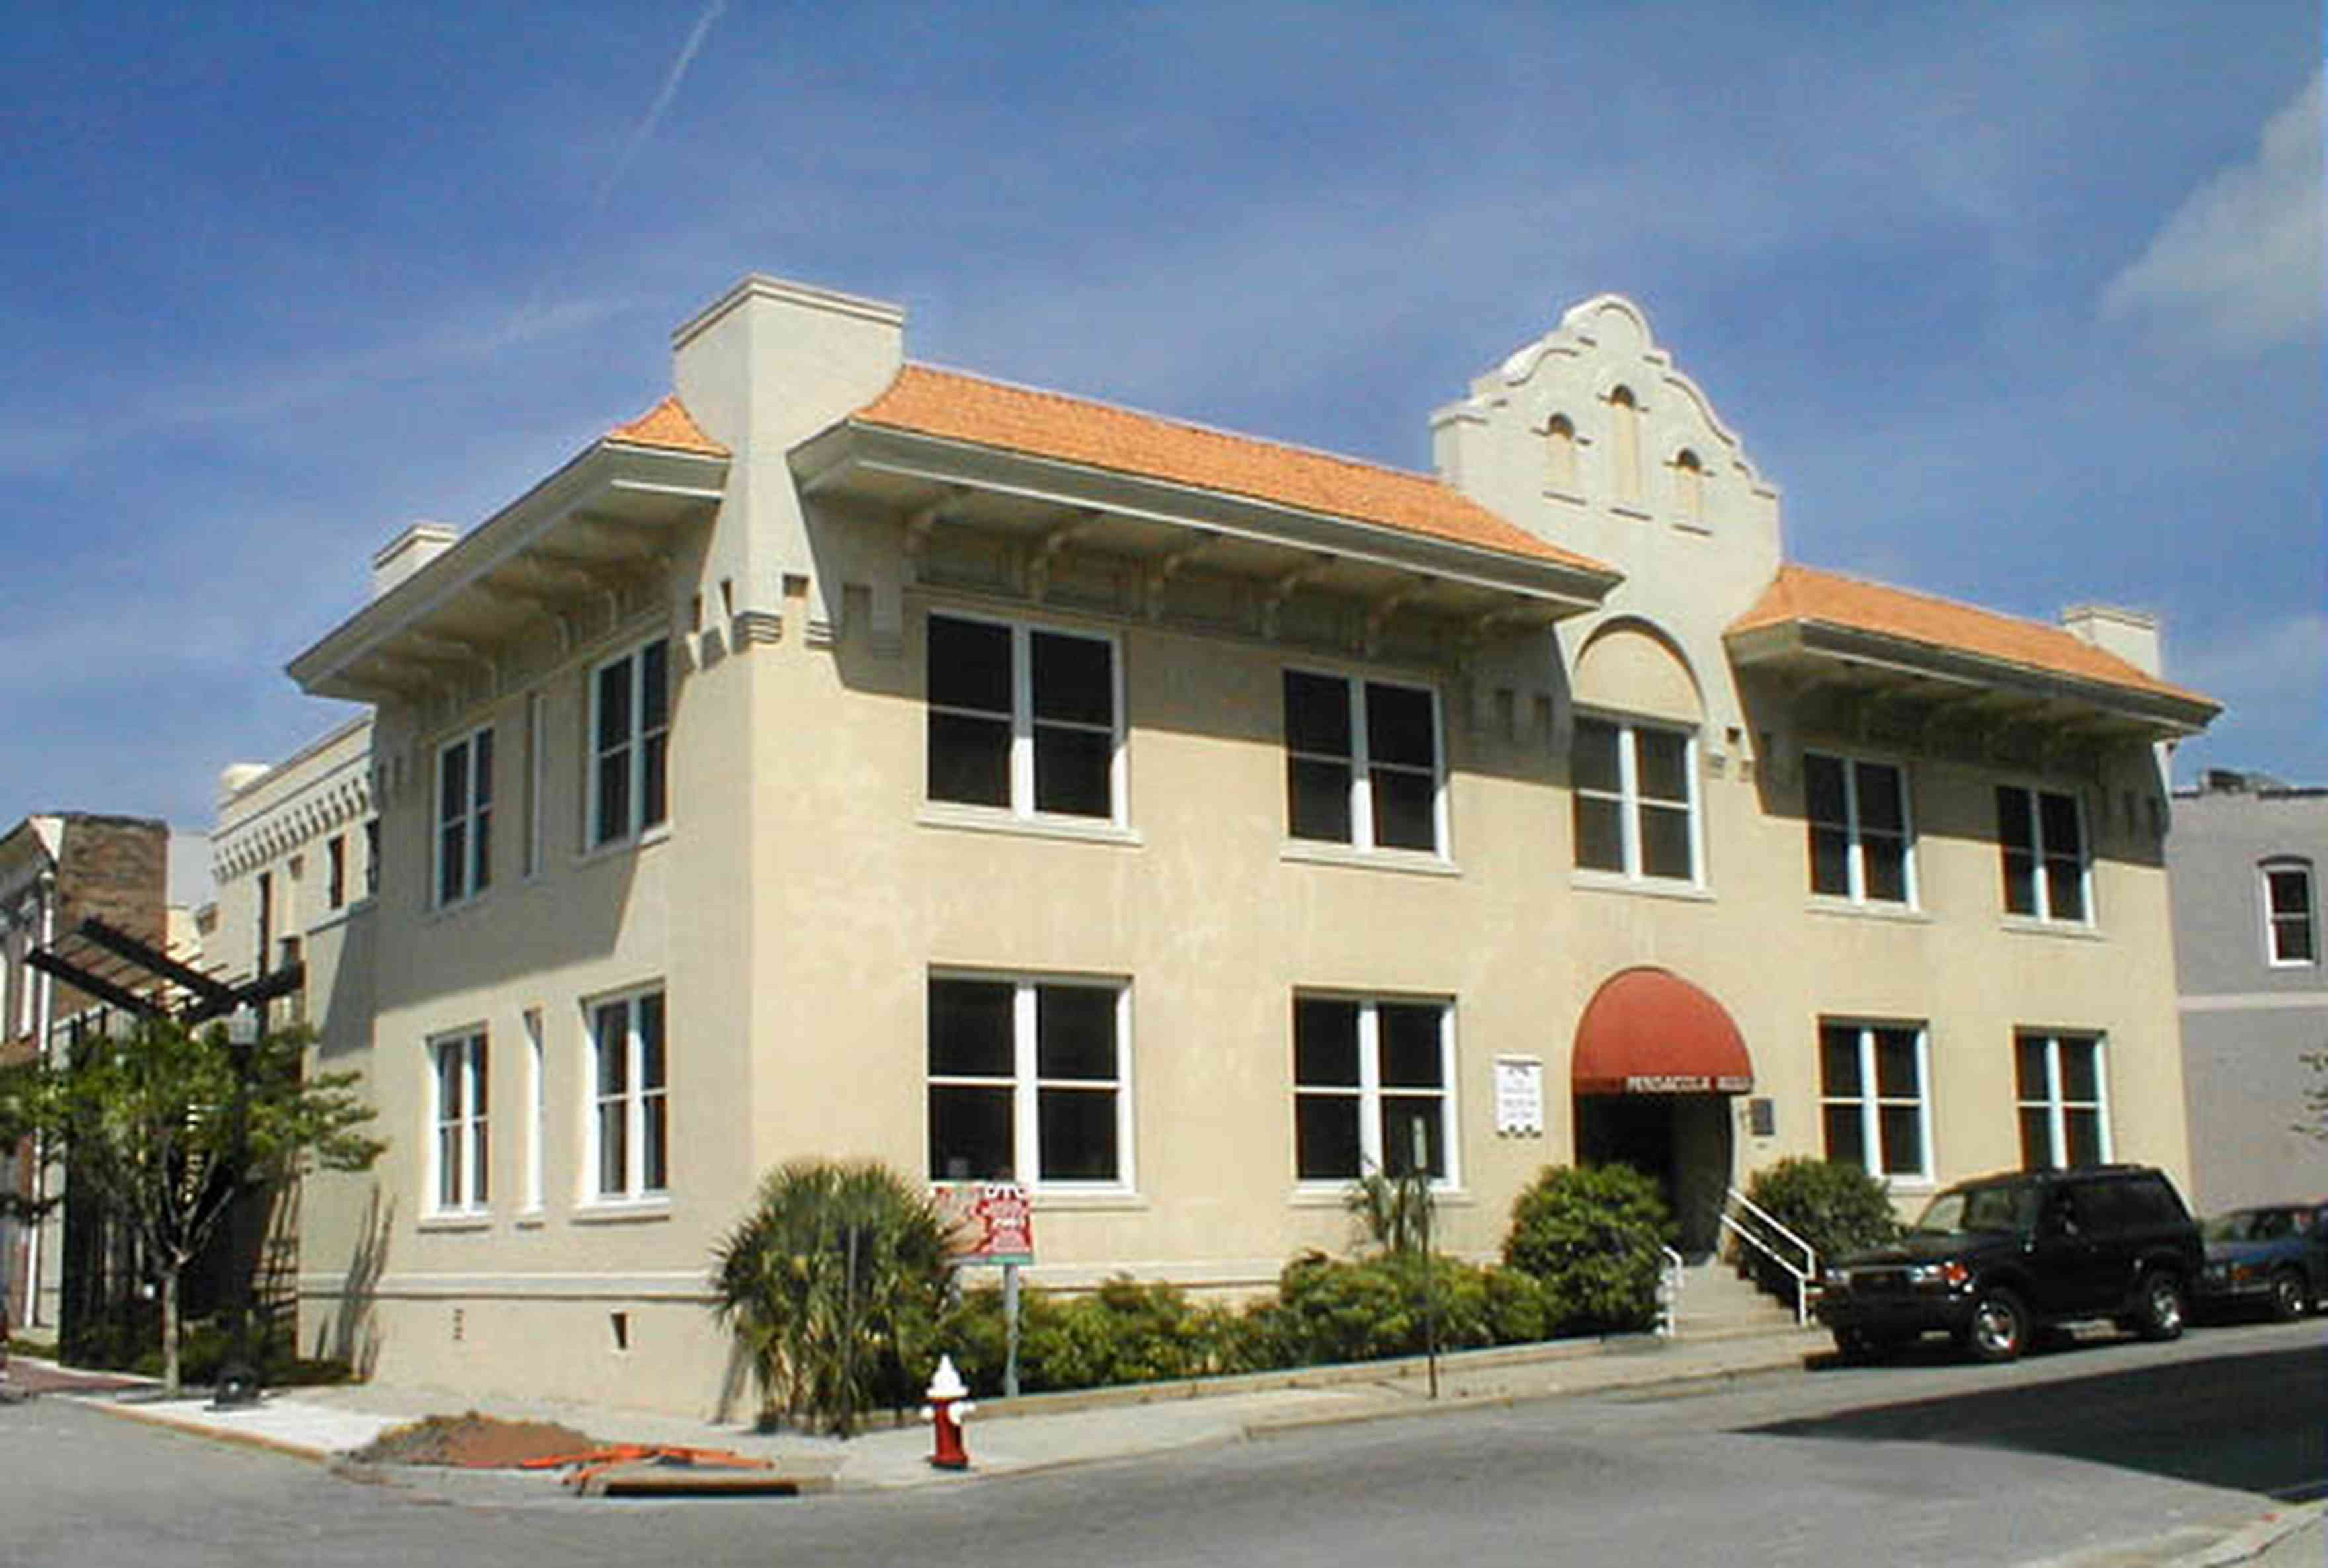 Pensacola:-Seville-Historic-District:-Old-City-Jail_00.jpg:  classical architecture, beaux arts architectural style, spanish revival architecture, art museum, awning, downtown, stucco, bars, jail, prisoners, incarceration